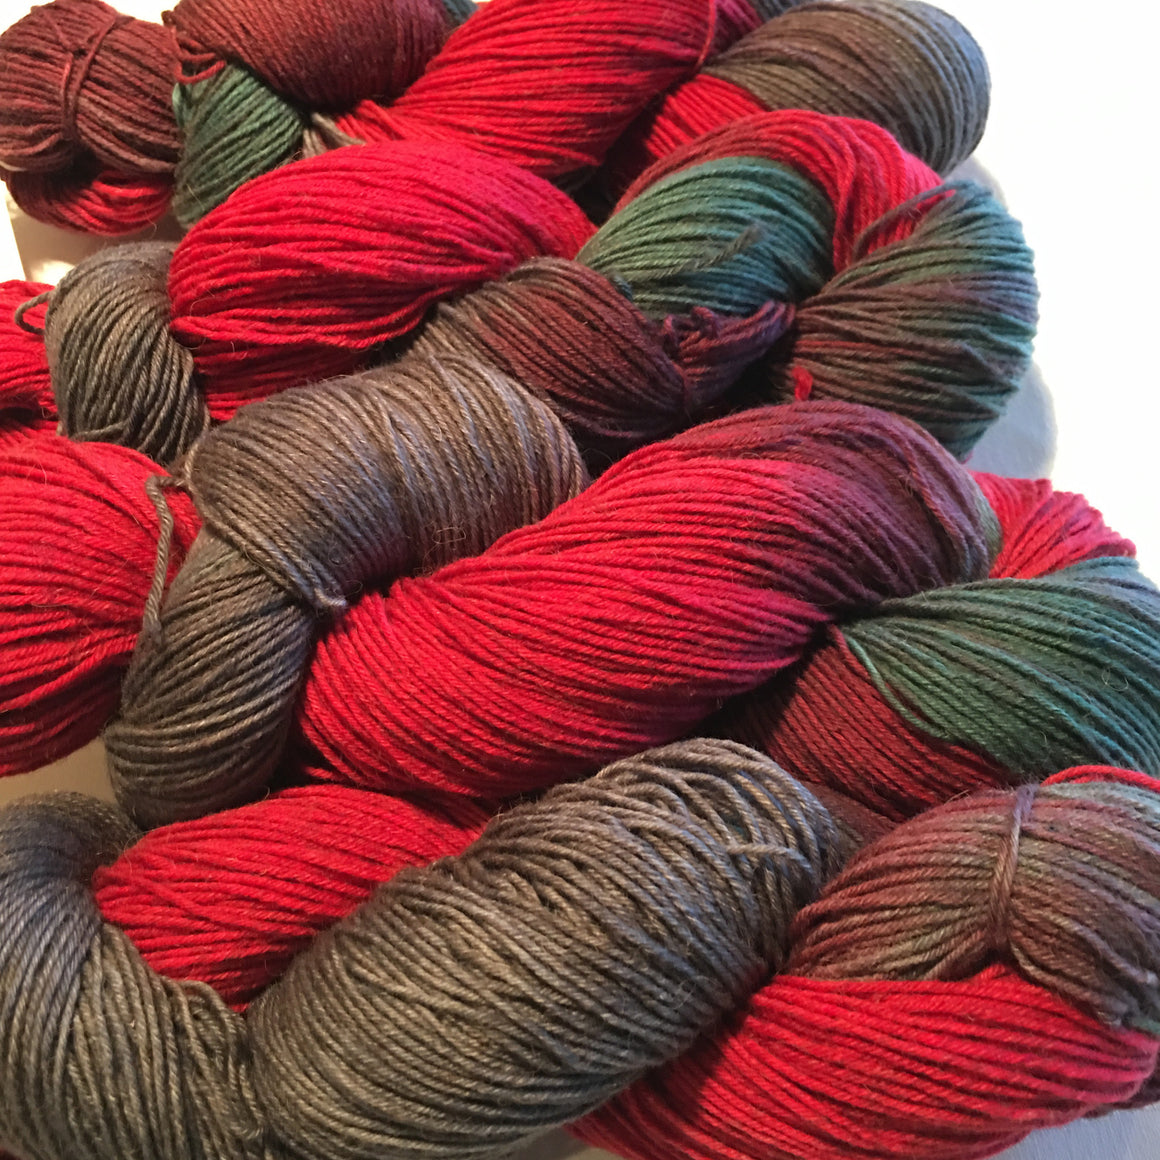 """Firewalkers"" bison yarn is bright red combined with soft grays and earth greens."